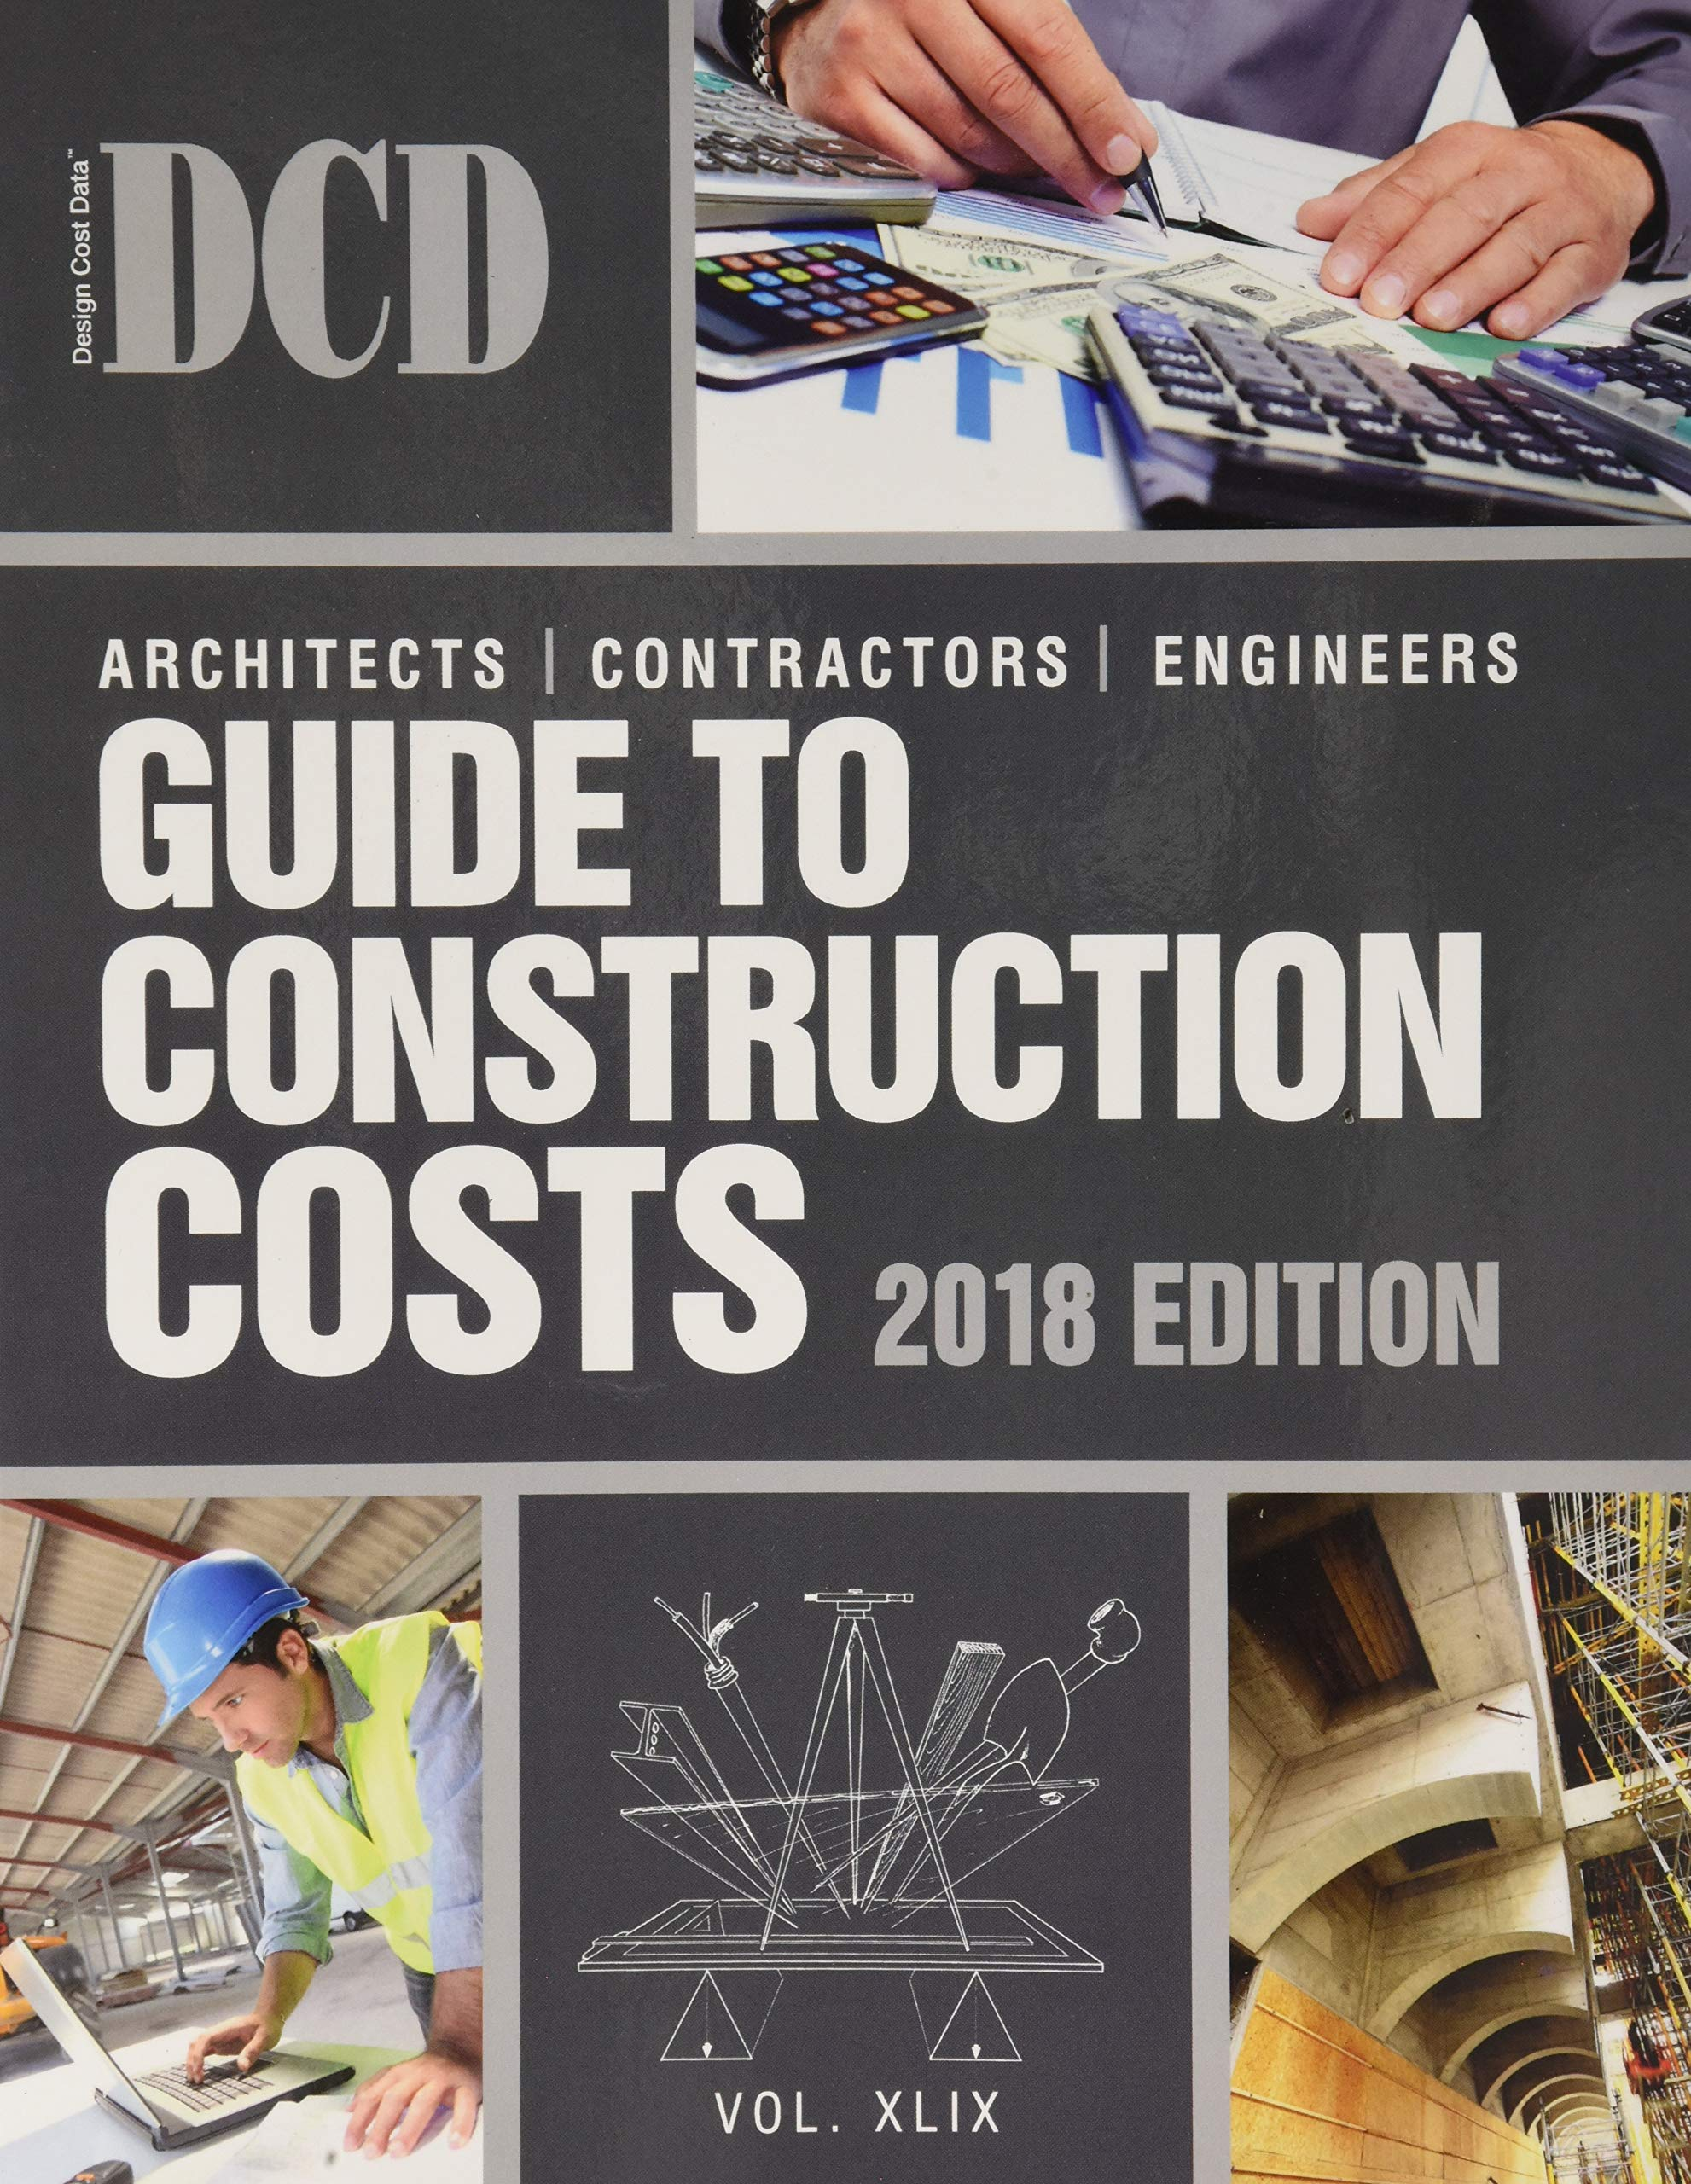 2018 dcd guide to construction costs bni building news rh amazon com rawlinsons guide to construction costs guide to construction costs reviews